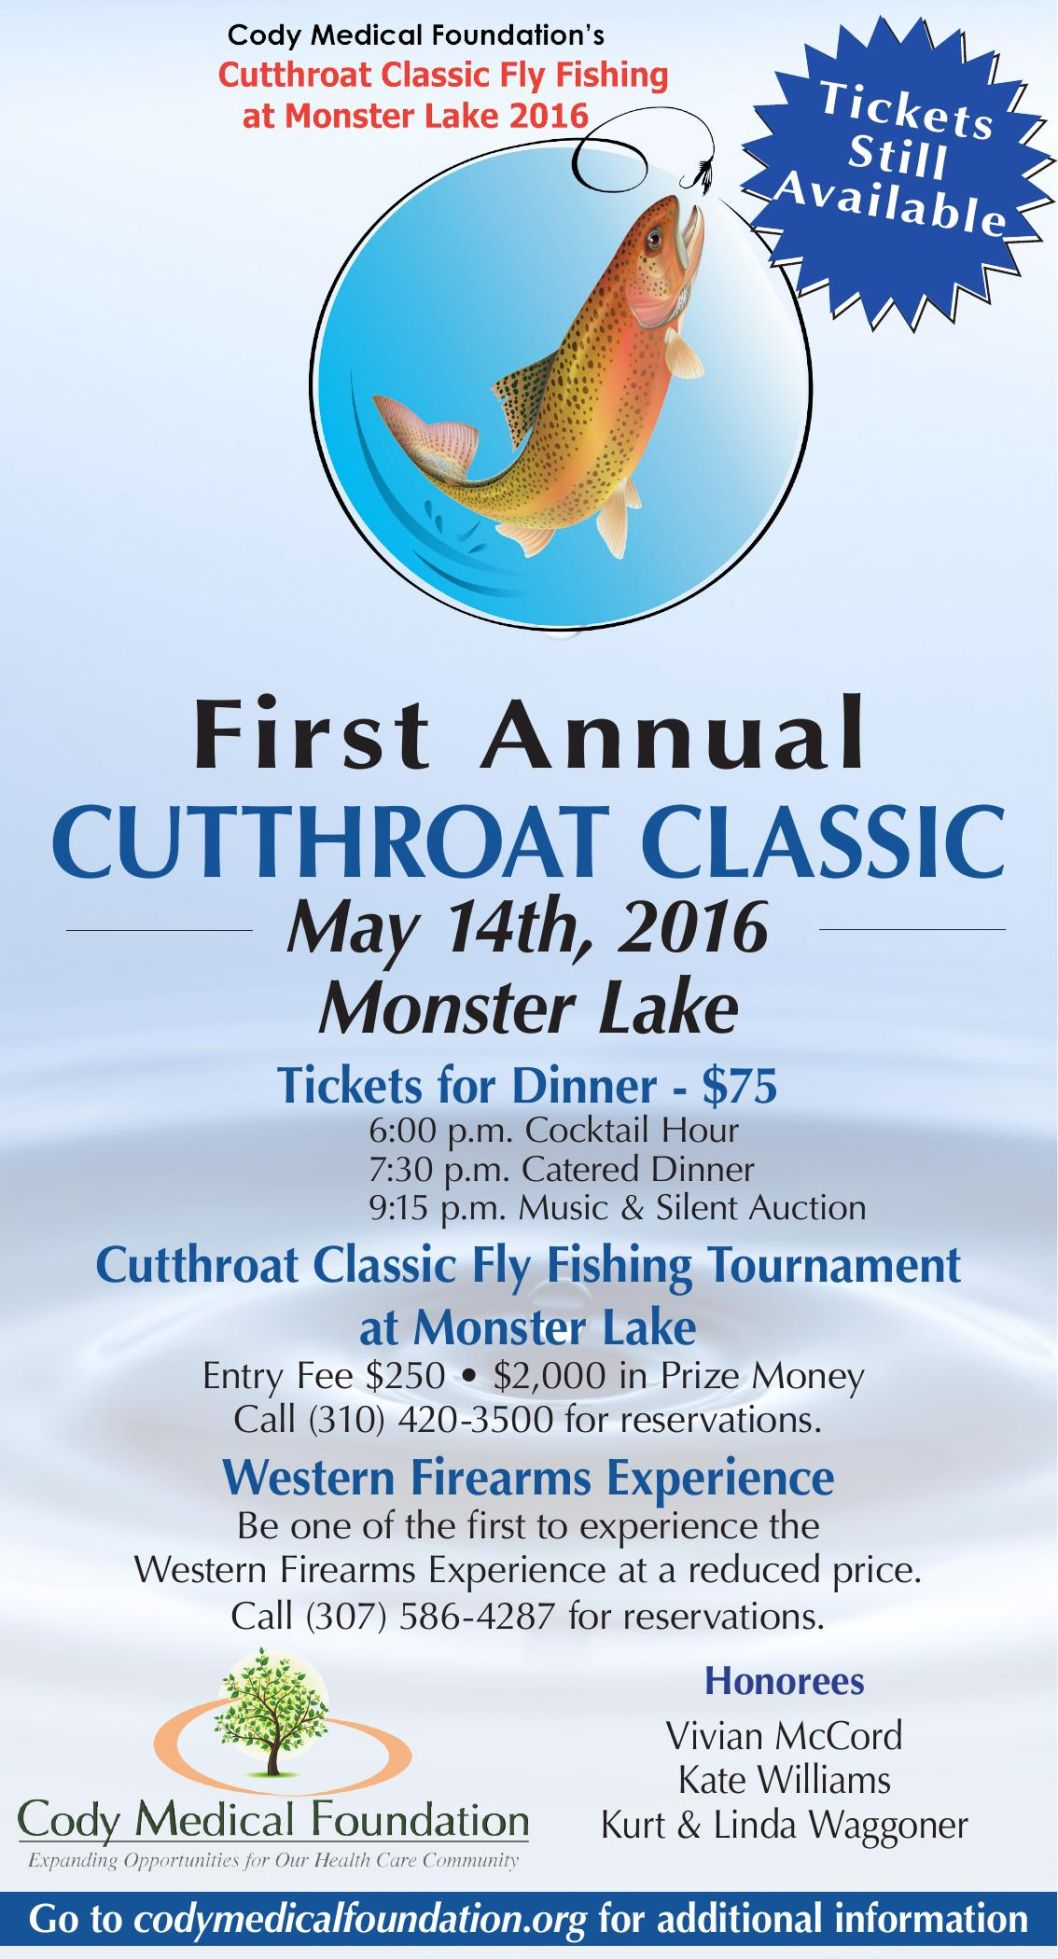 000307_cody_medical_foundation_cutthroat_classic_fundraiser